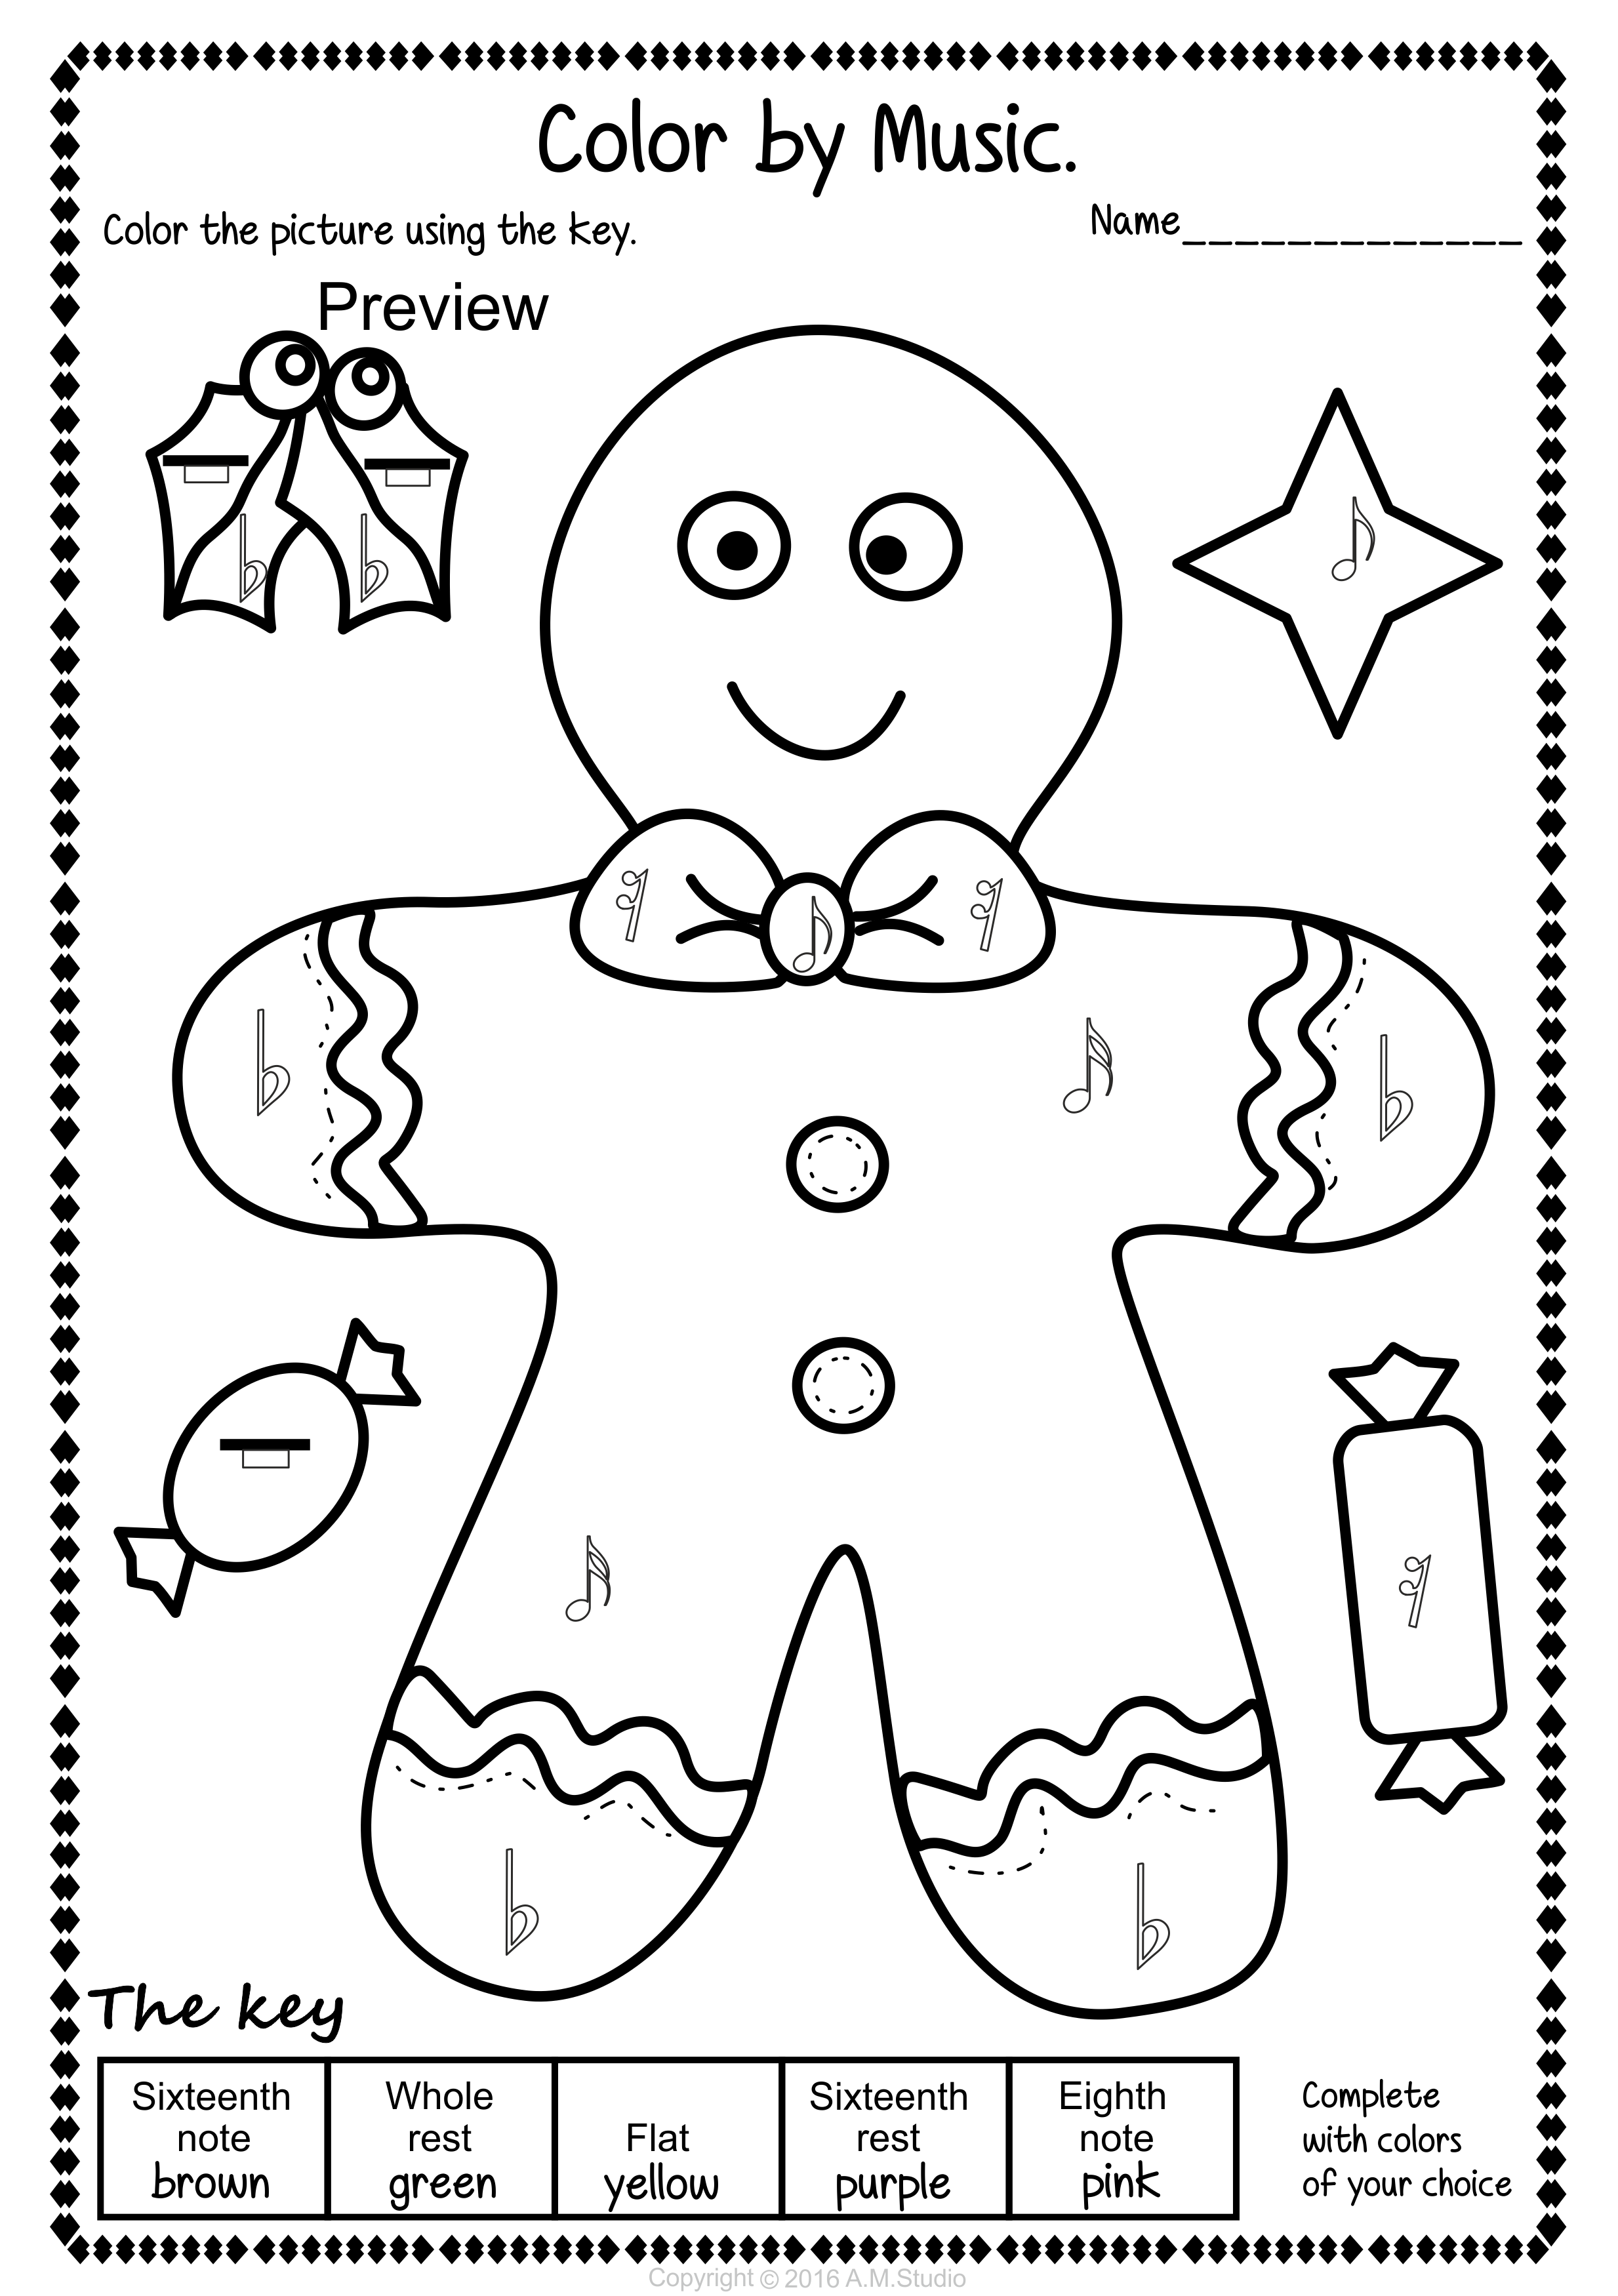 Simple And Fun Christmas Music Coloring Activity For Kids